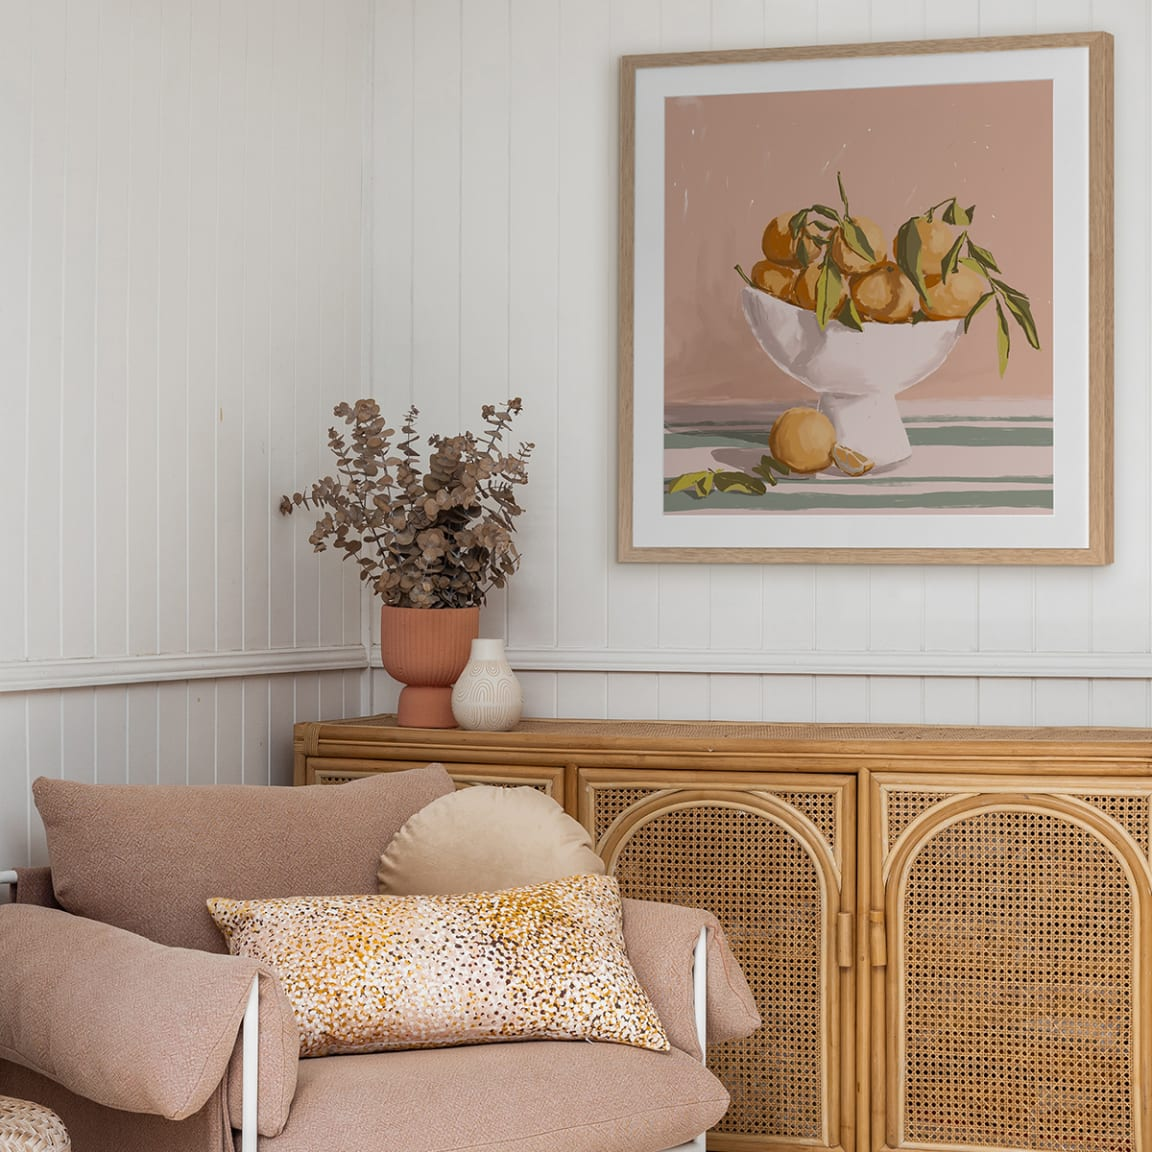 Urban Road: Interior colour trends for spring 2021